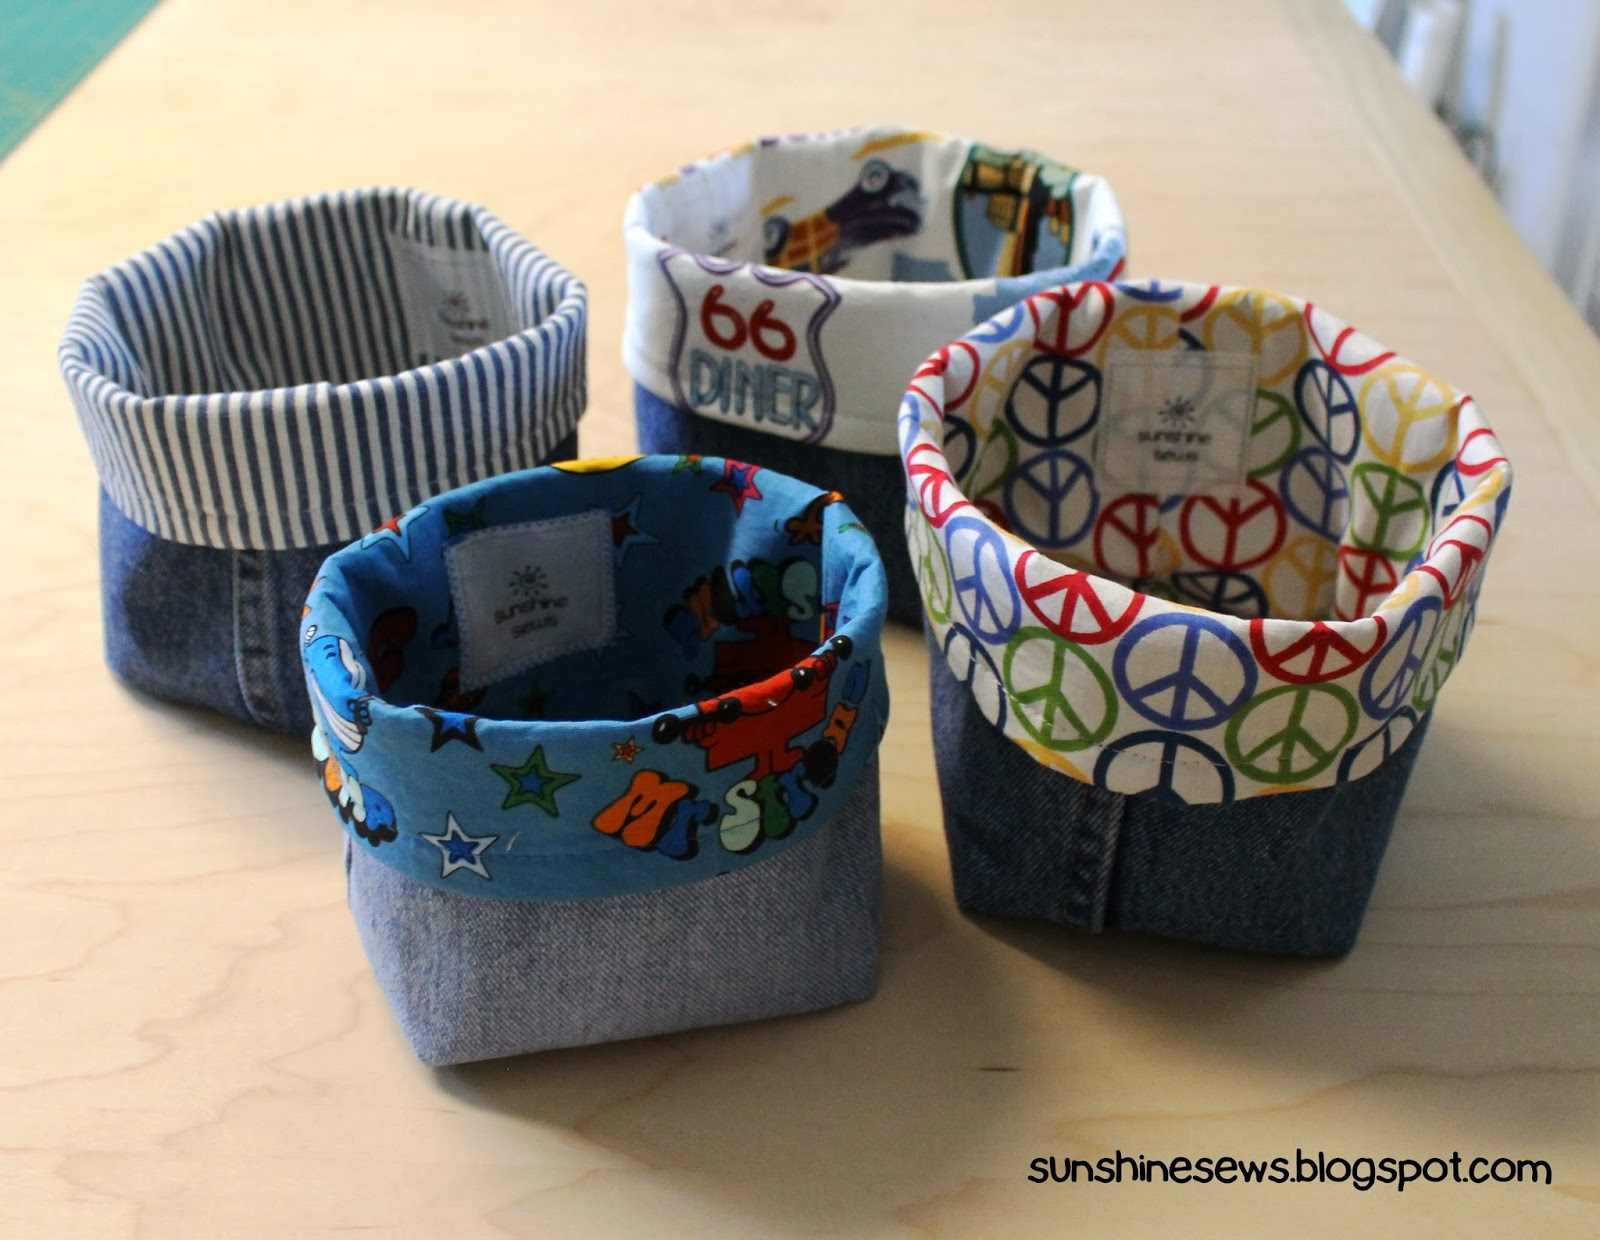 Sunshine sews recycled denim fabric baskets for Recycled crafts to sell